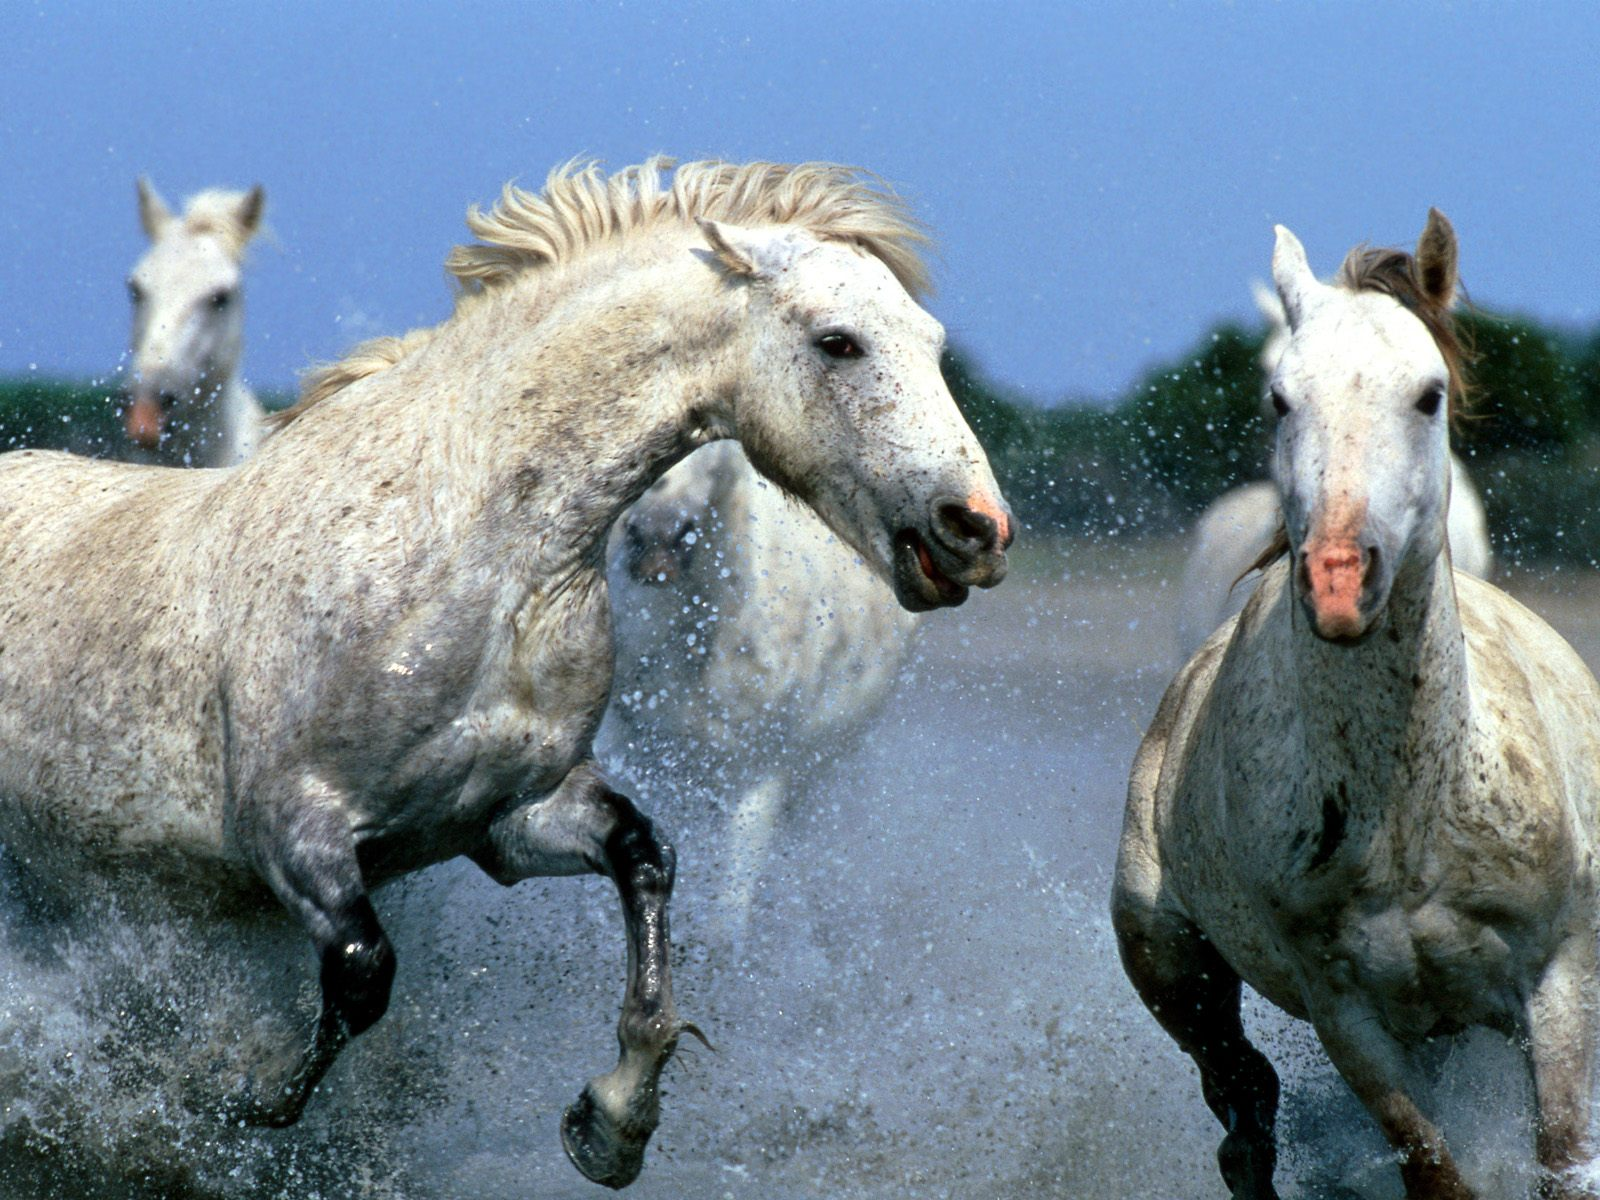 The Cat Horses Wallpapers for Desktop Backgrounds 1600x1200